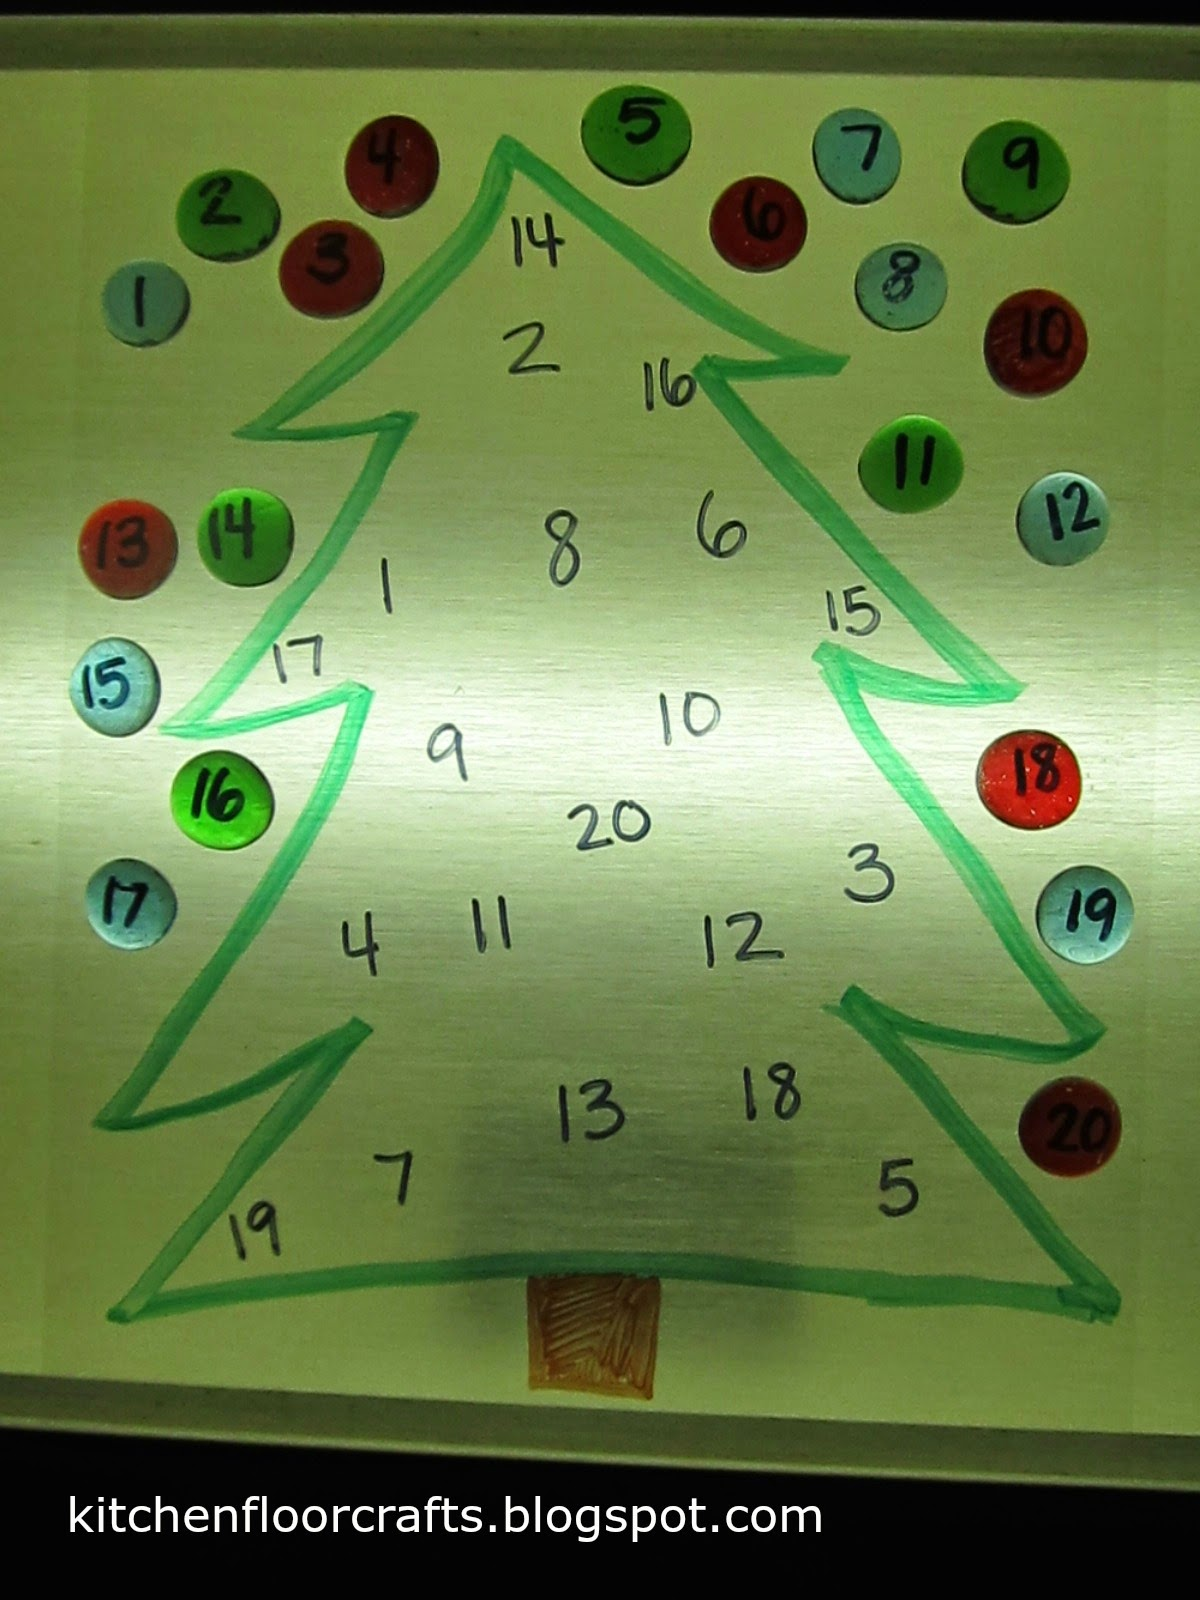 Kitchen Floor Crafts Christmas Tree Numbers For The